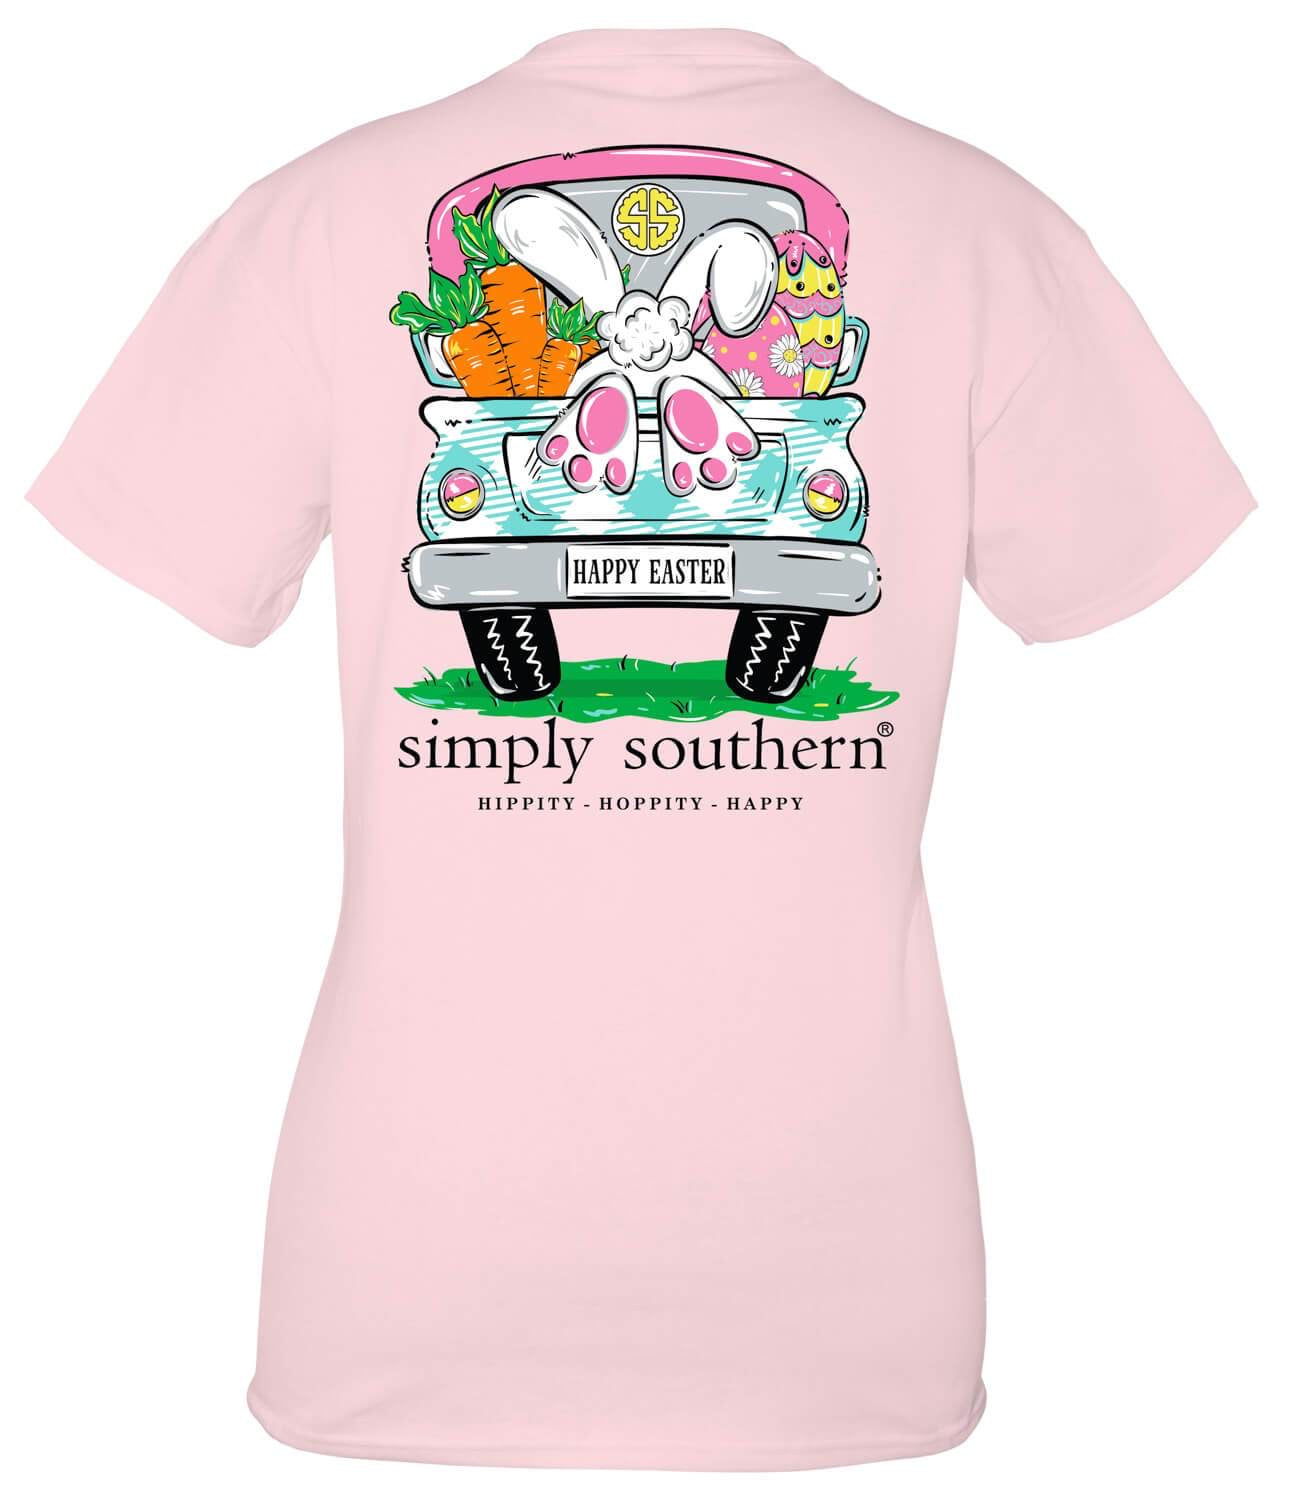 SIMPLY SOUTHERN SHORT SLEEVE YOUTH - BUNNY LULU